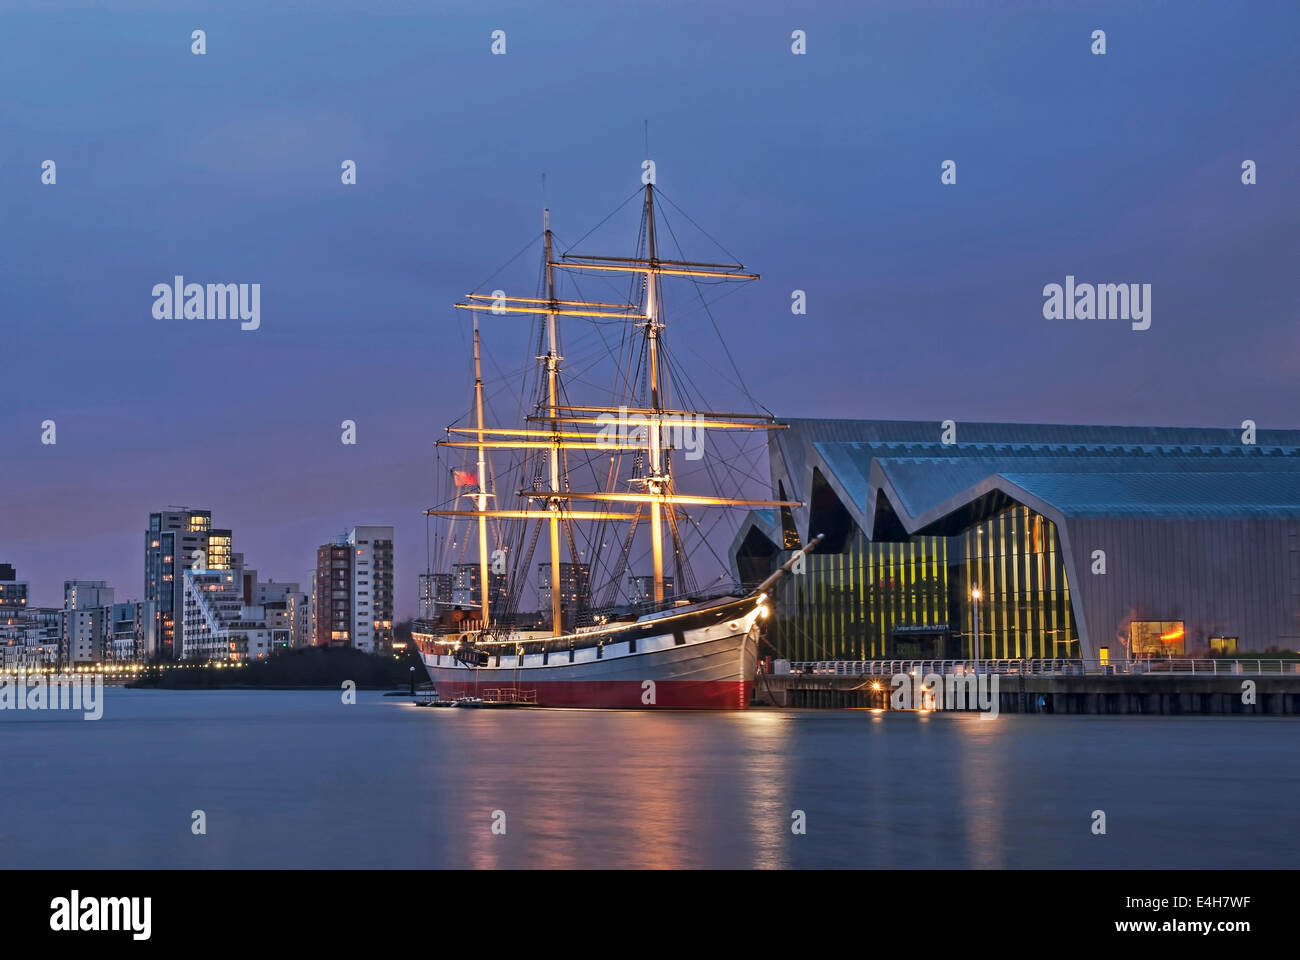 The Glenlee Tall Ship at the Riverside Museum Glasgow early evening in Winter - Stock Image